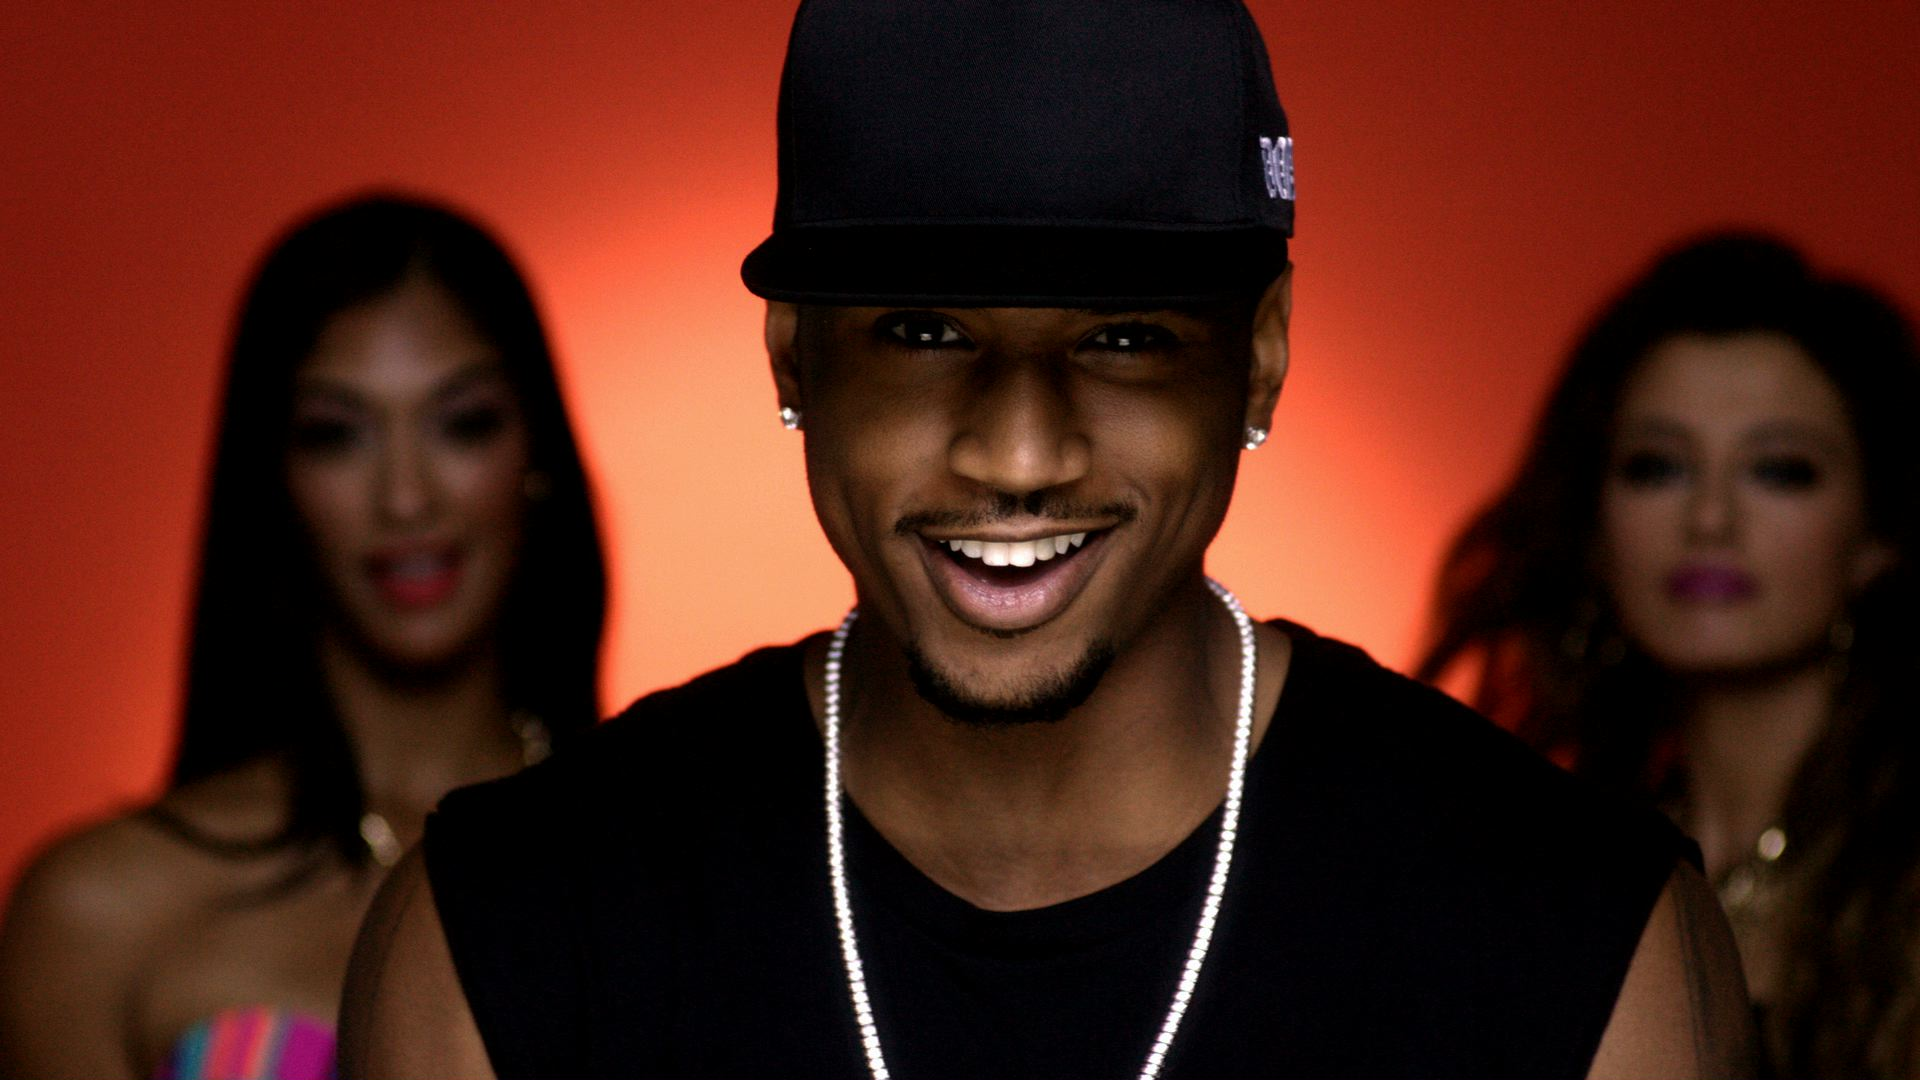 <h2>Trey Songz</h2><h3>Foreign (Part 1)</h3>